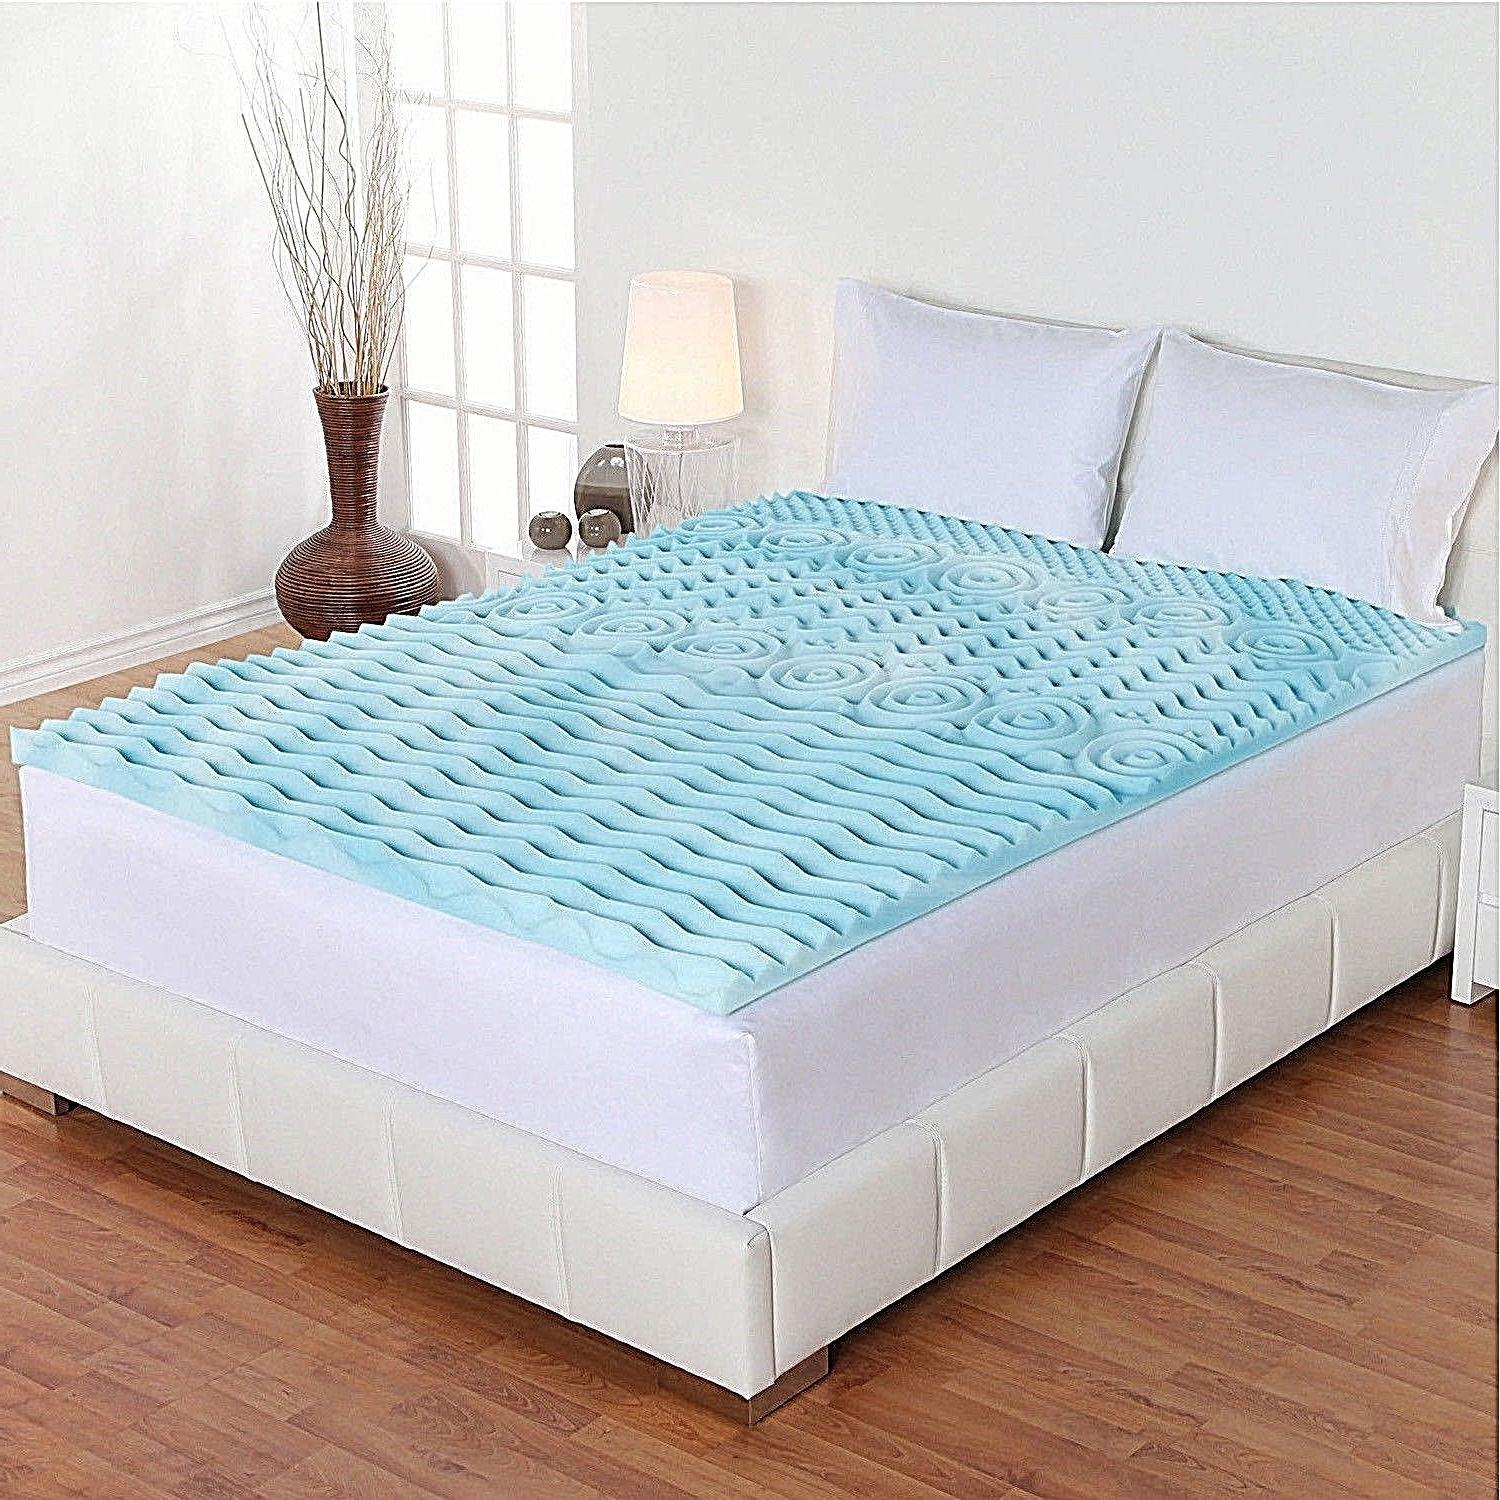 "2"" Orthopedic Memory Foam Mattress Pad Topper Cover Firm Bed"